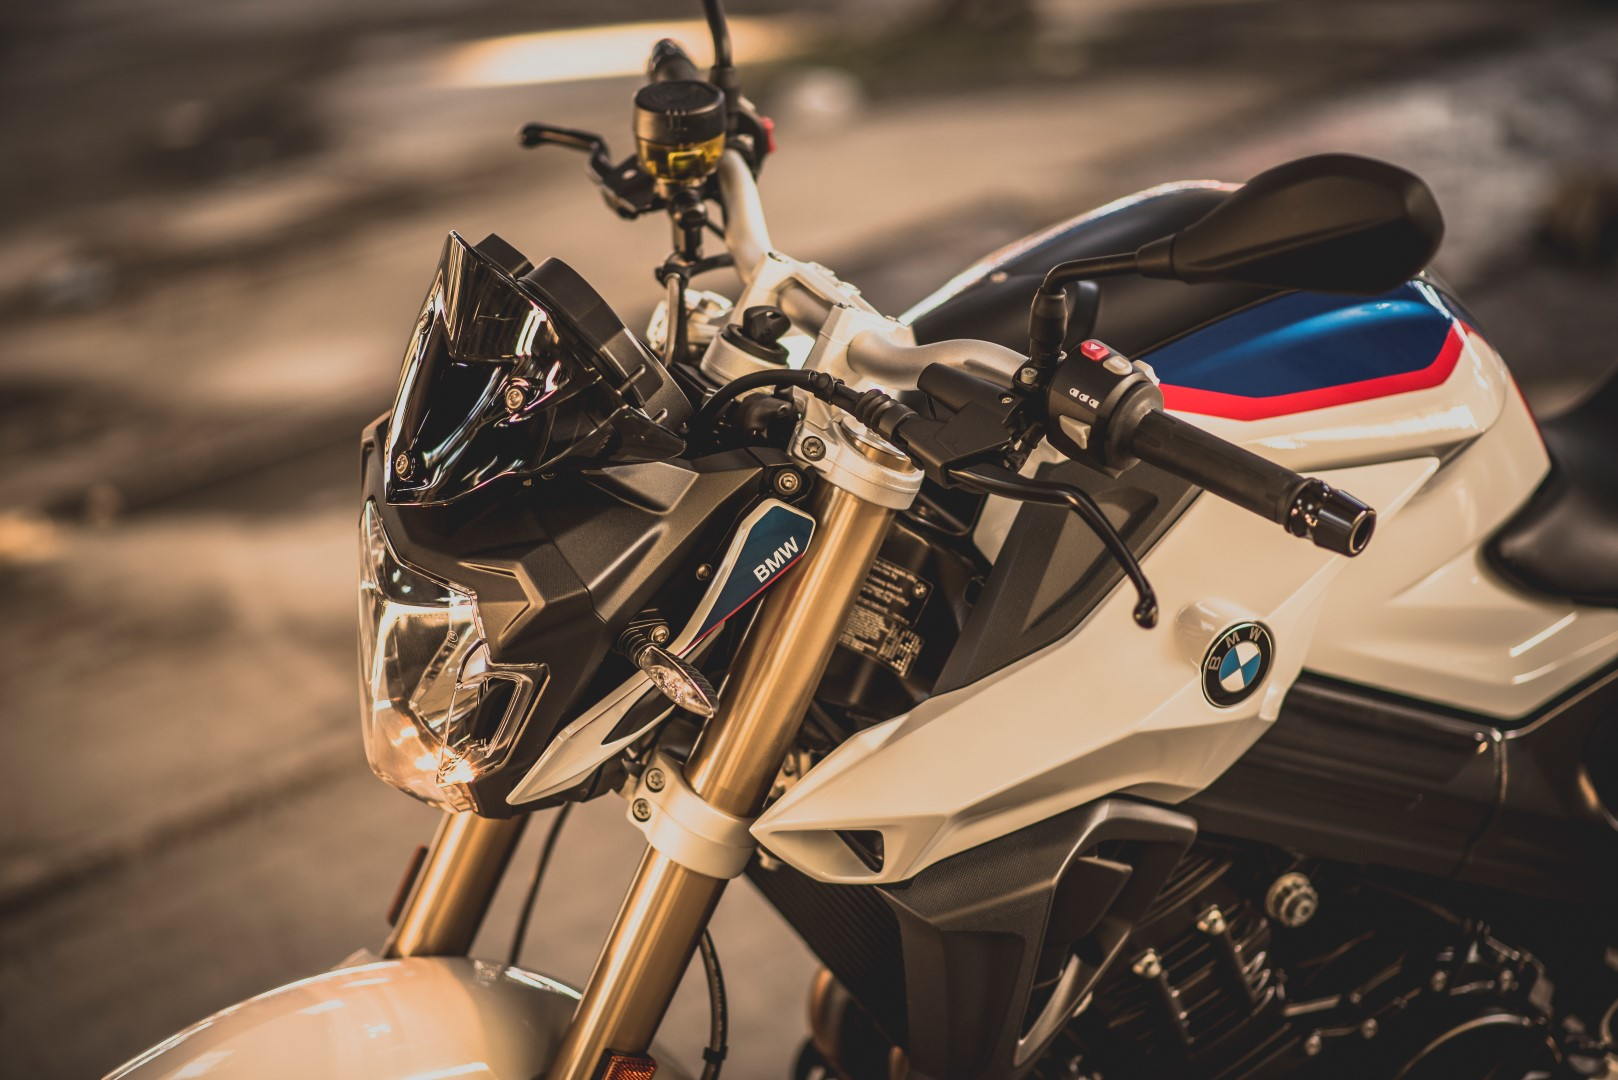 BMW F 800 R Akrapovic. Fotos